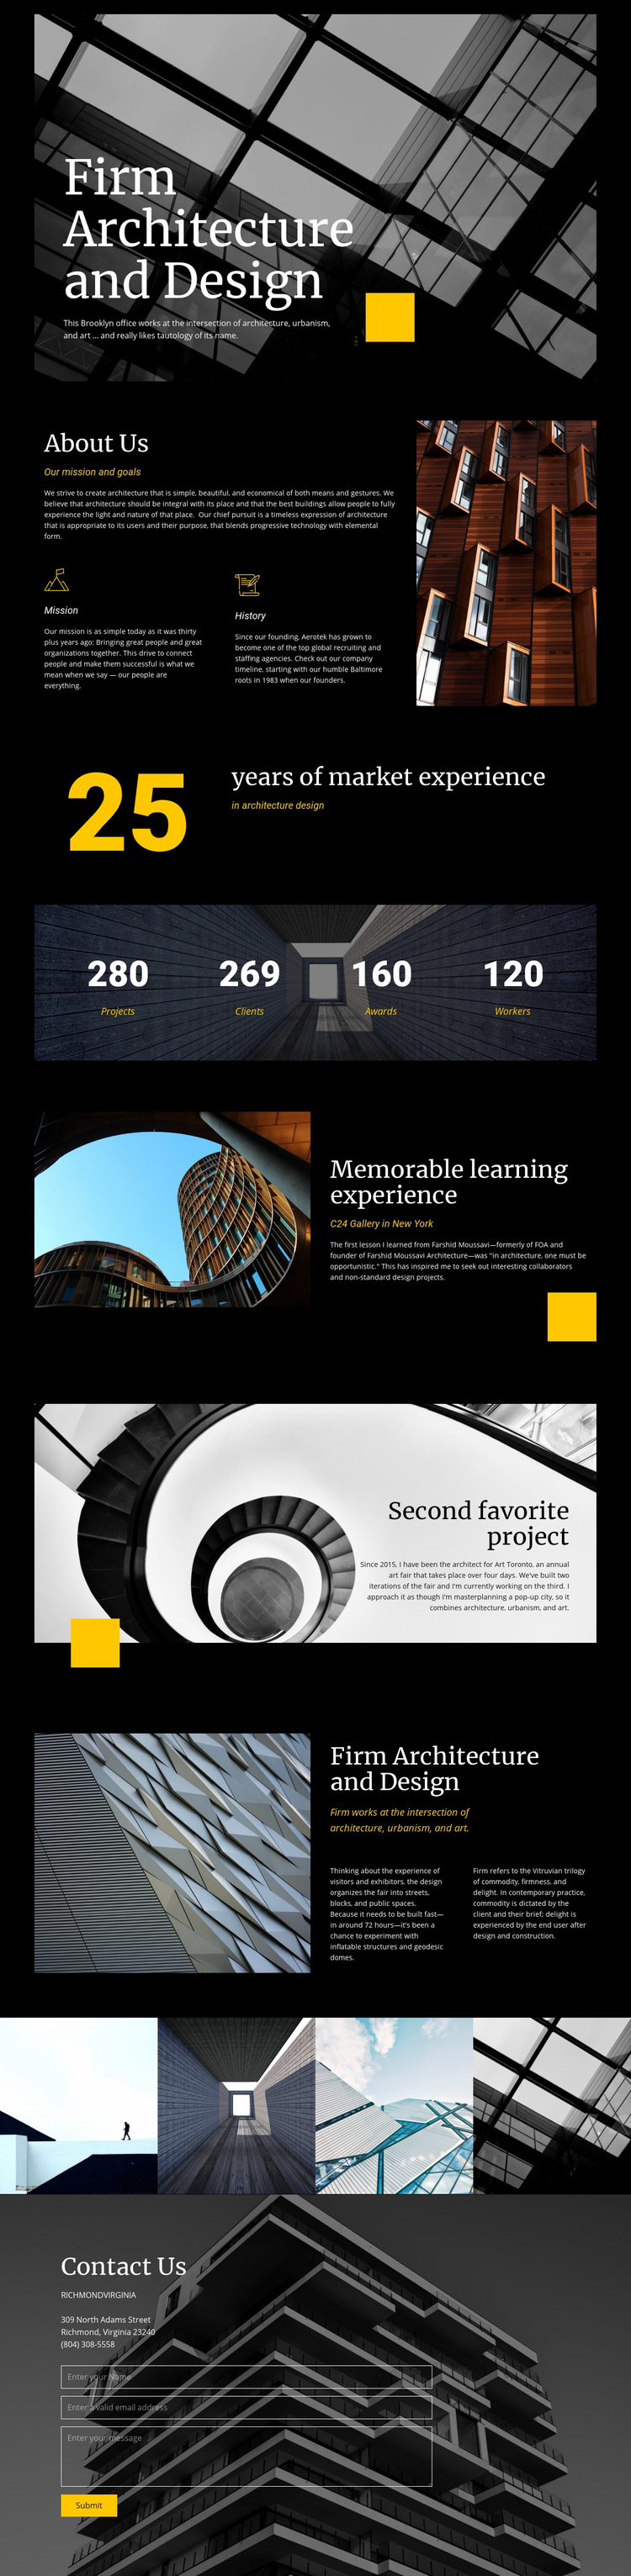 Firm architecture and Design Web Page Design